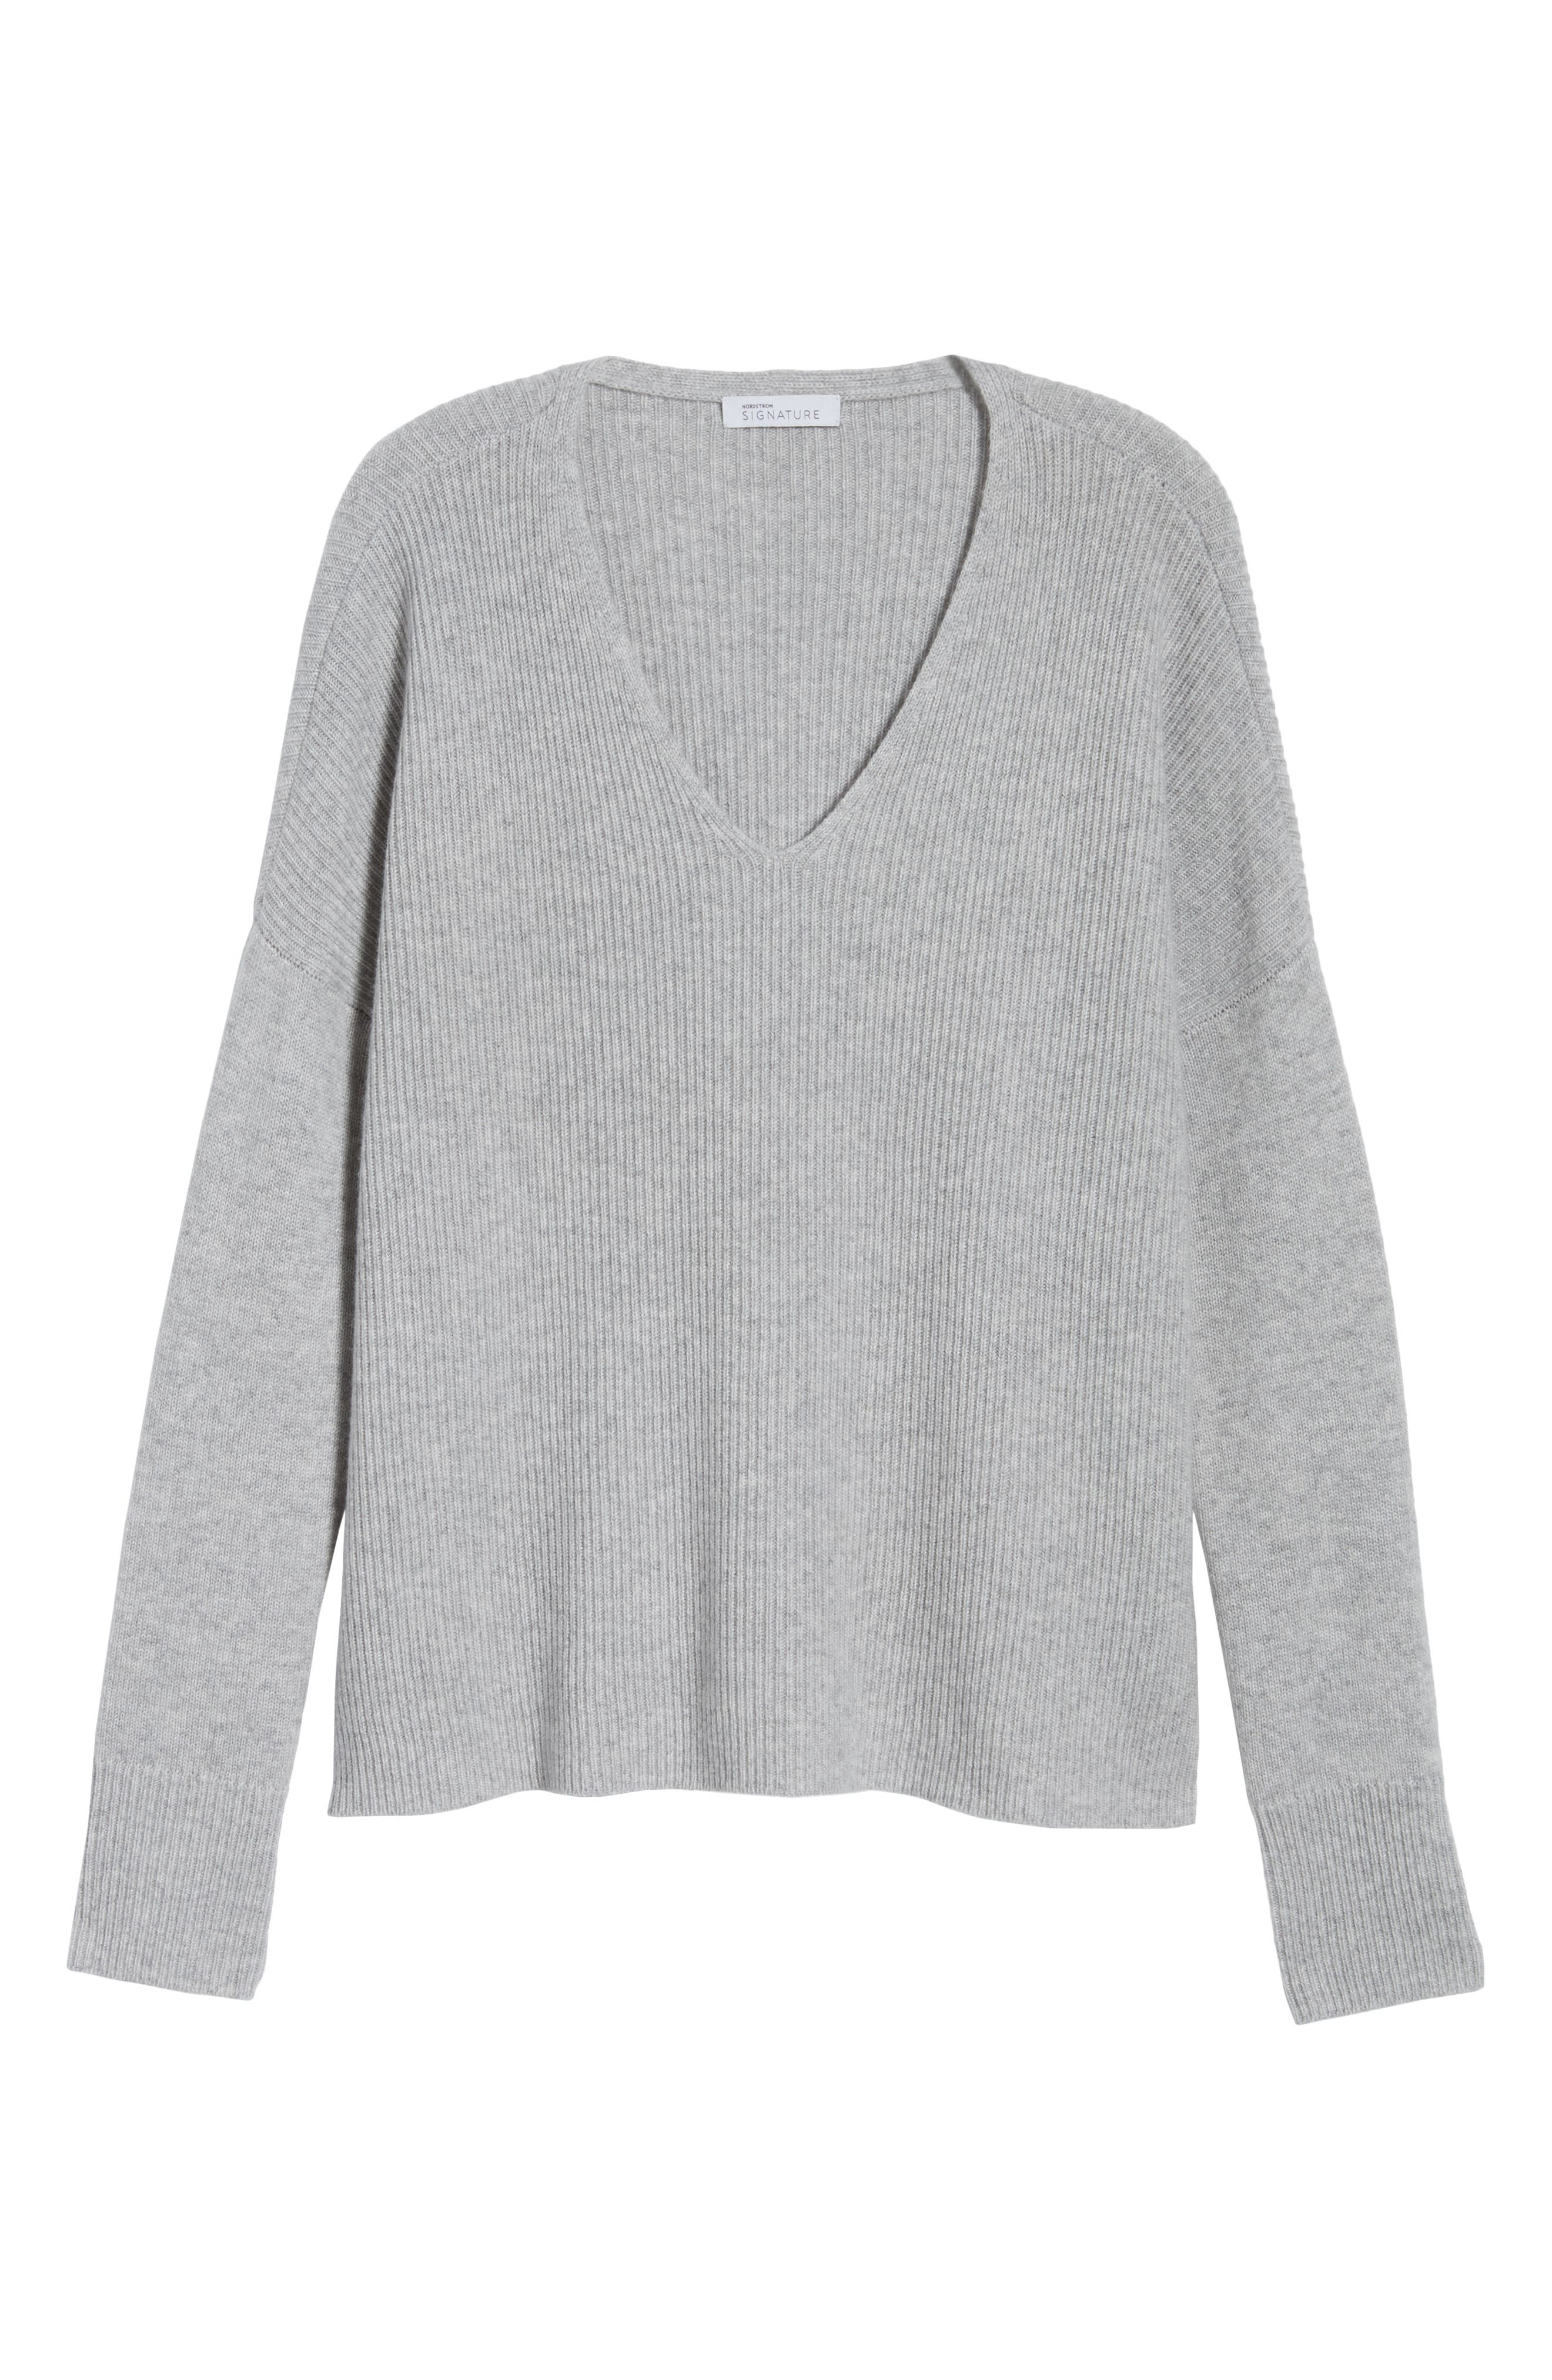 Cashmere Soft Ribbed Pullover Sweater,                             Alternate thumbnail 6, color,                             Grey Clay Heather